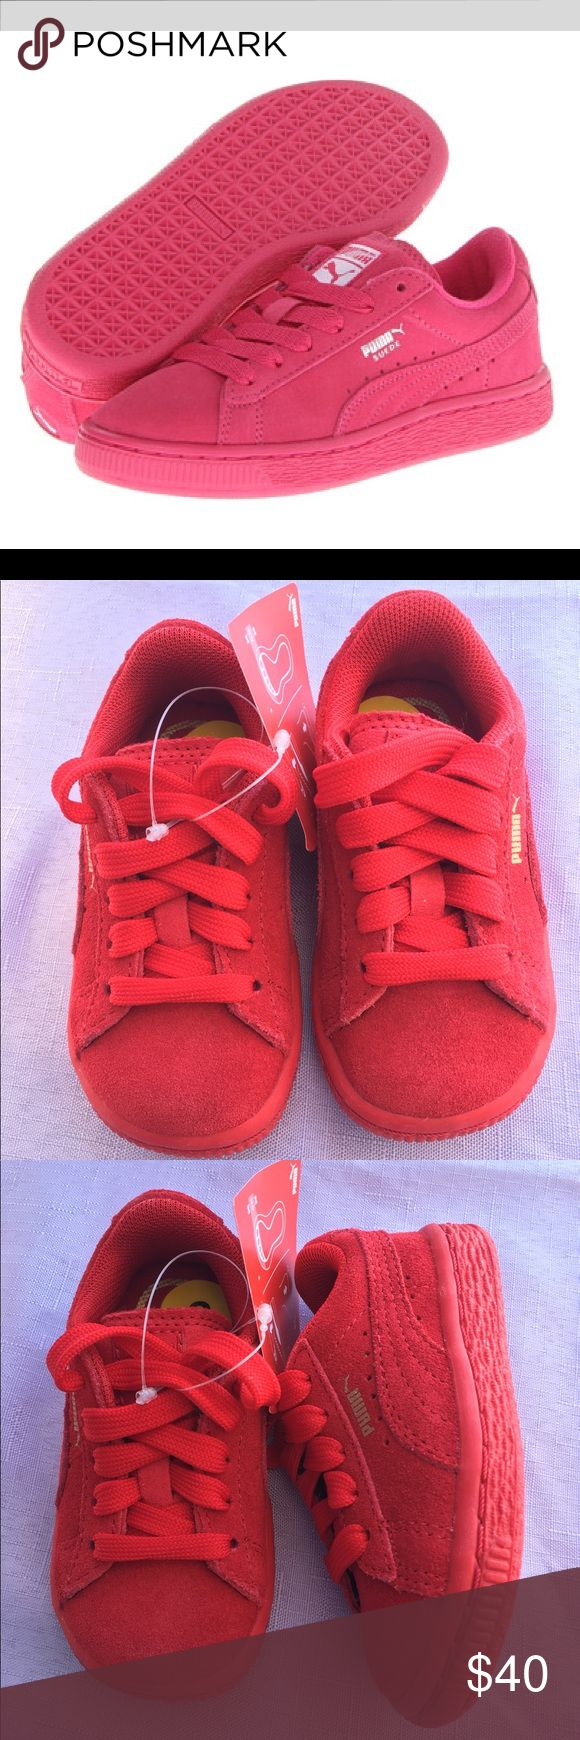 Puma kids shoes!! Kids puma shoes, color red suede, size toddler 5